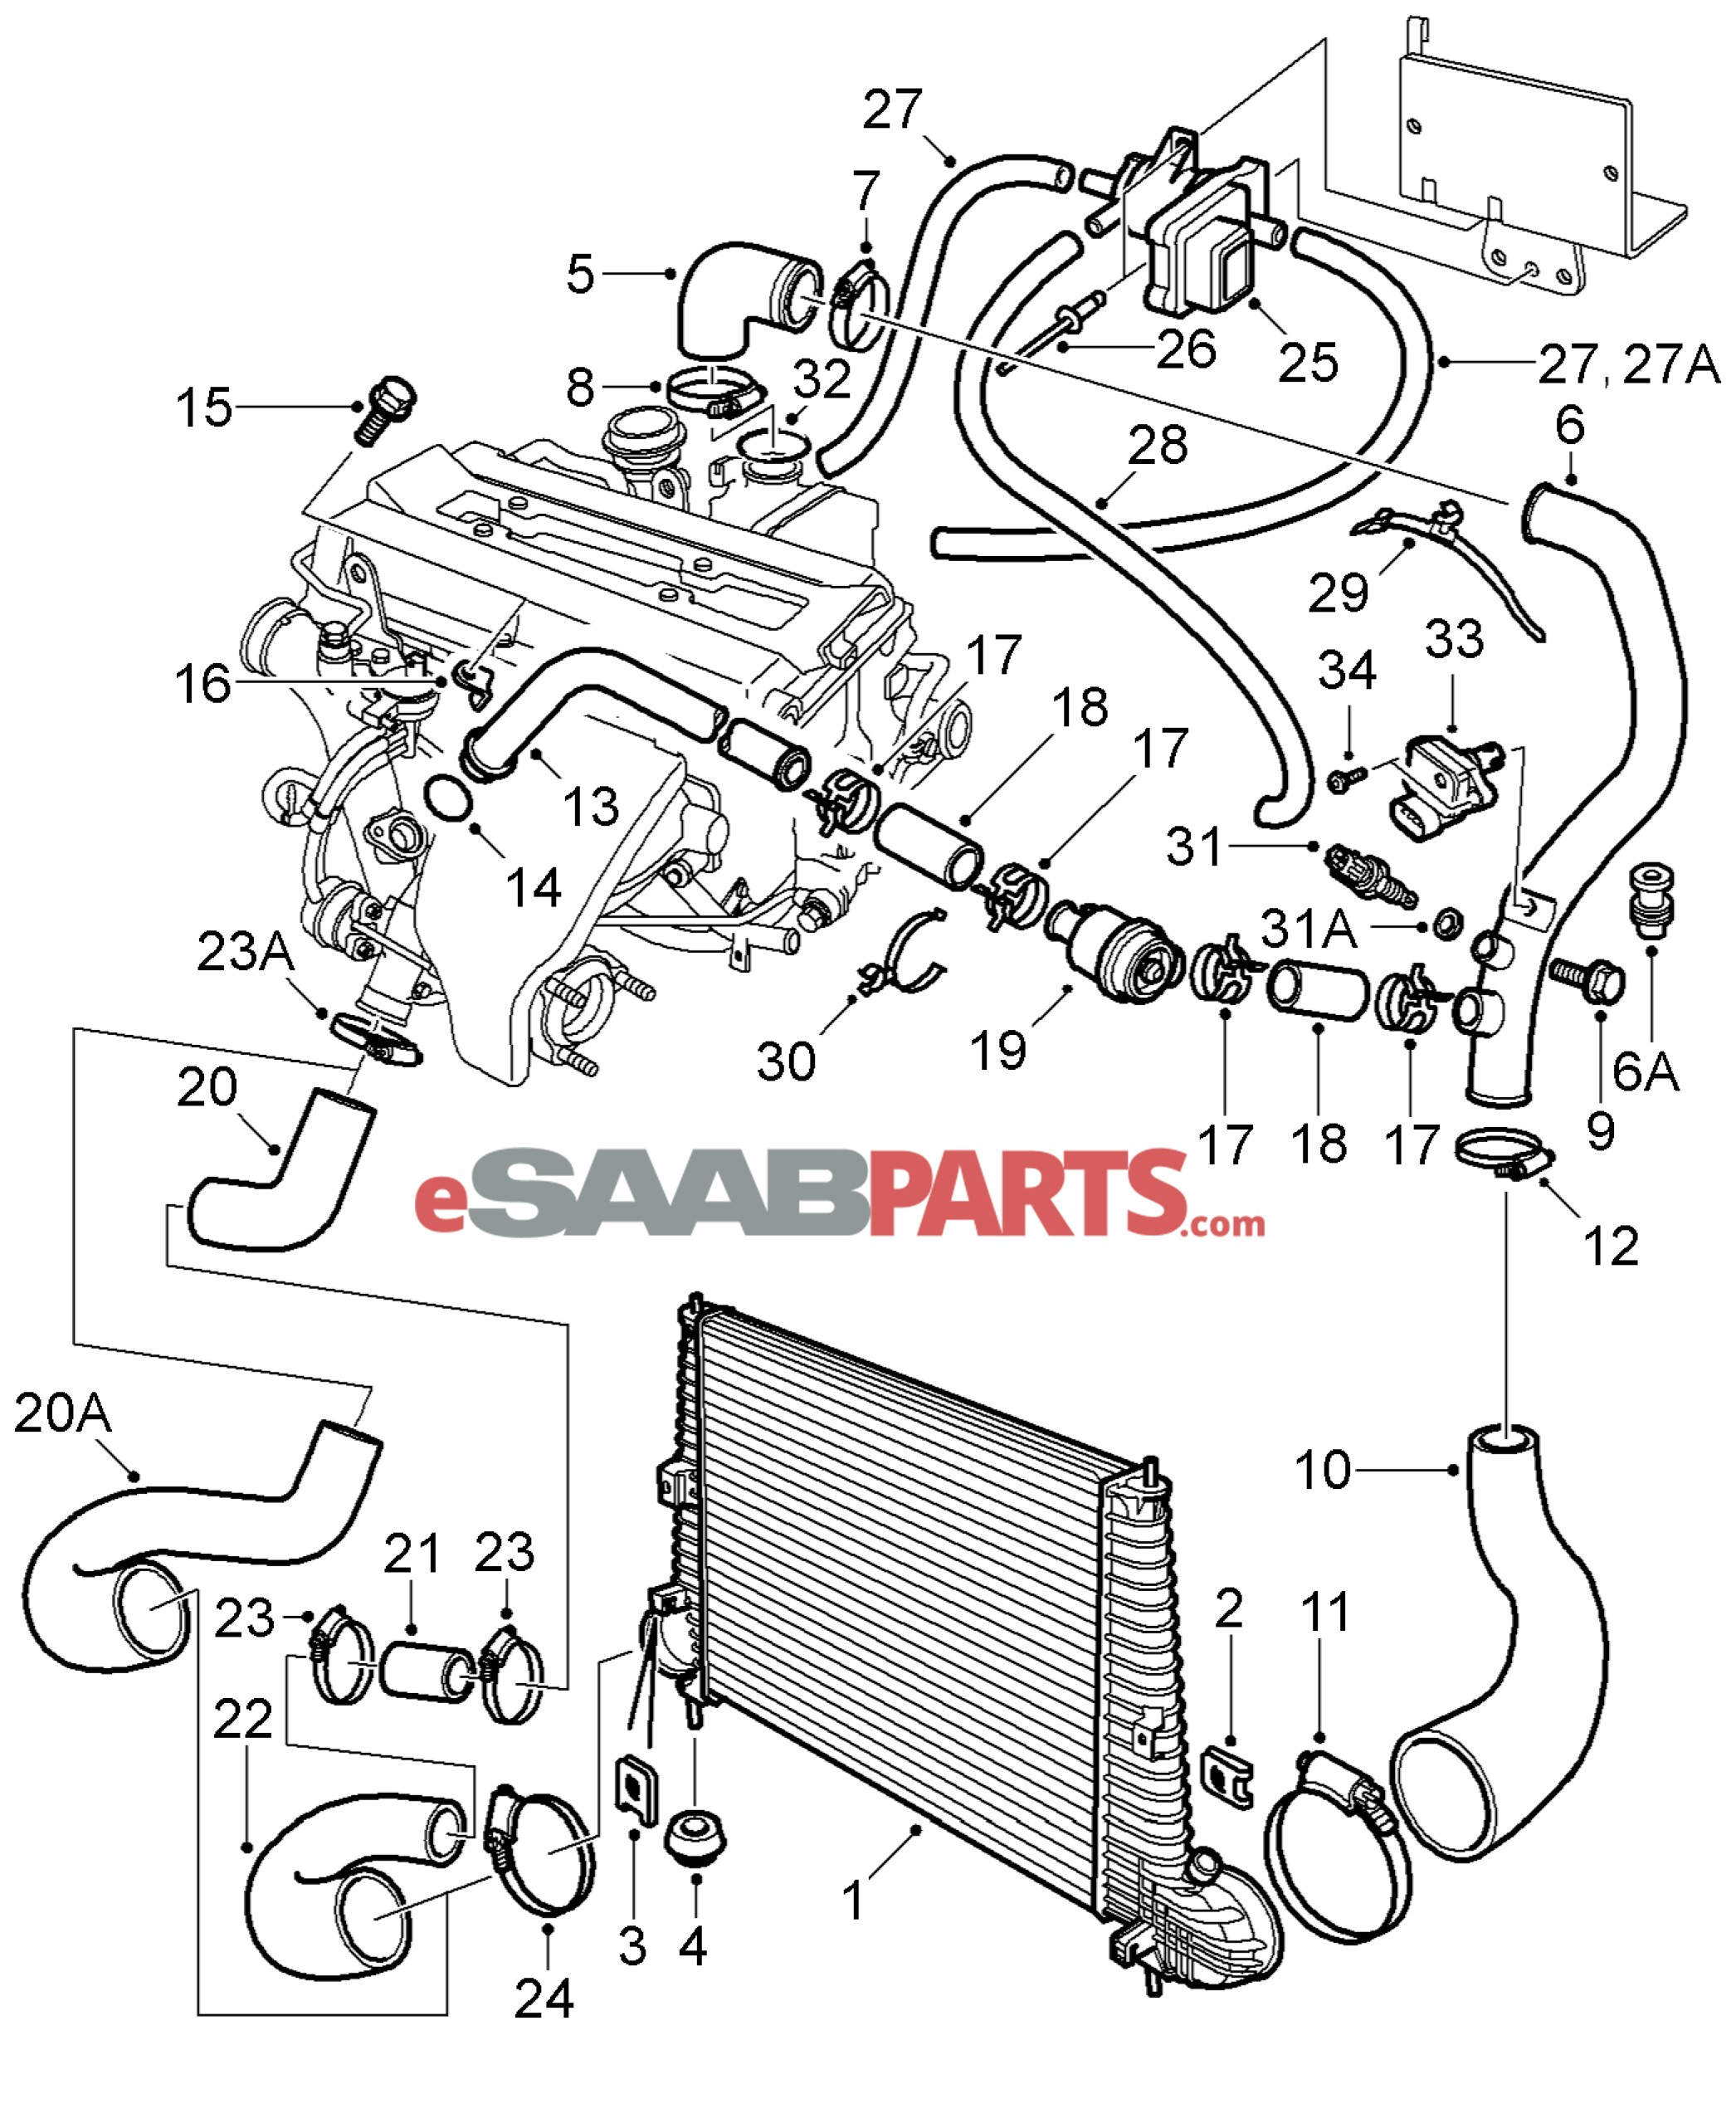 Saab 2 3 Turbo Engine Diagram Archive Of Automotive Wiring 8 Trusted Diagrams U2022 Rh Inspiralni Co